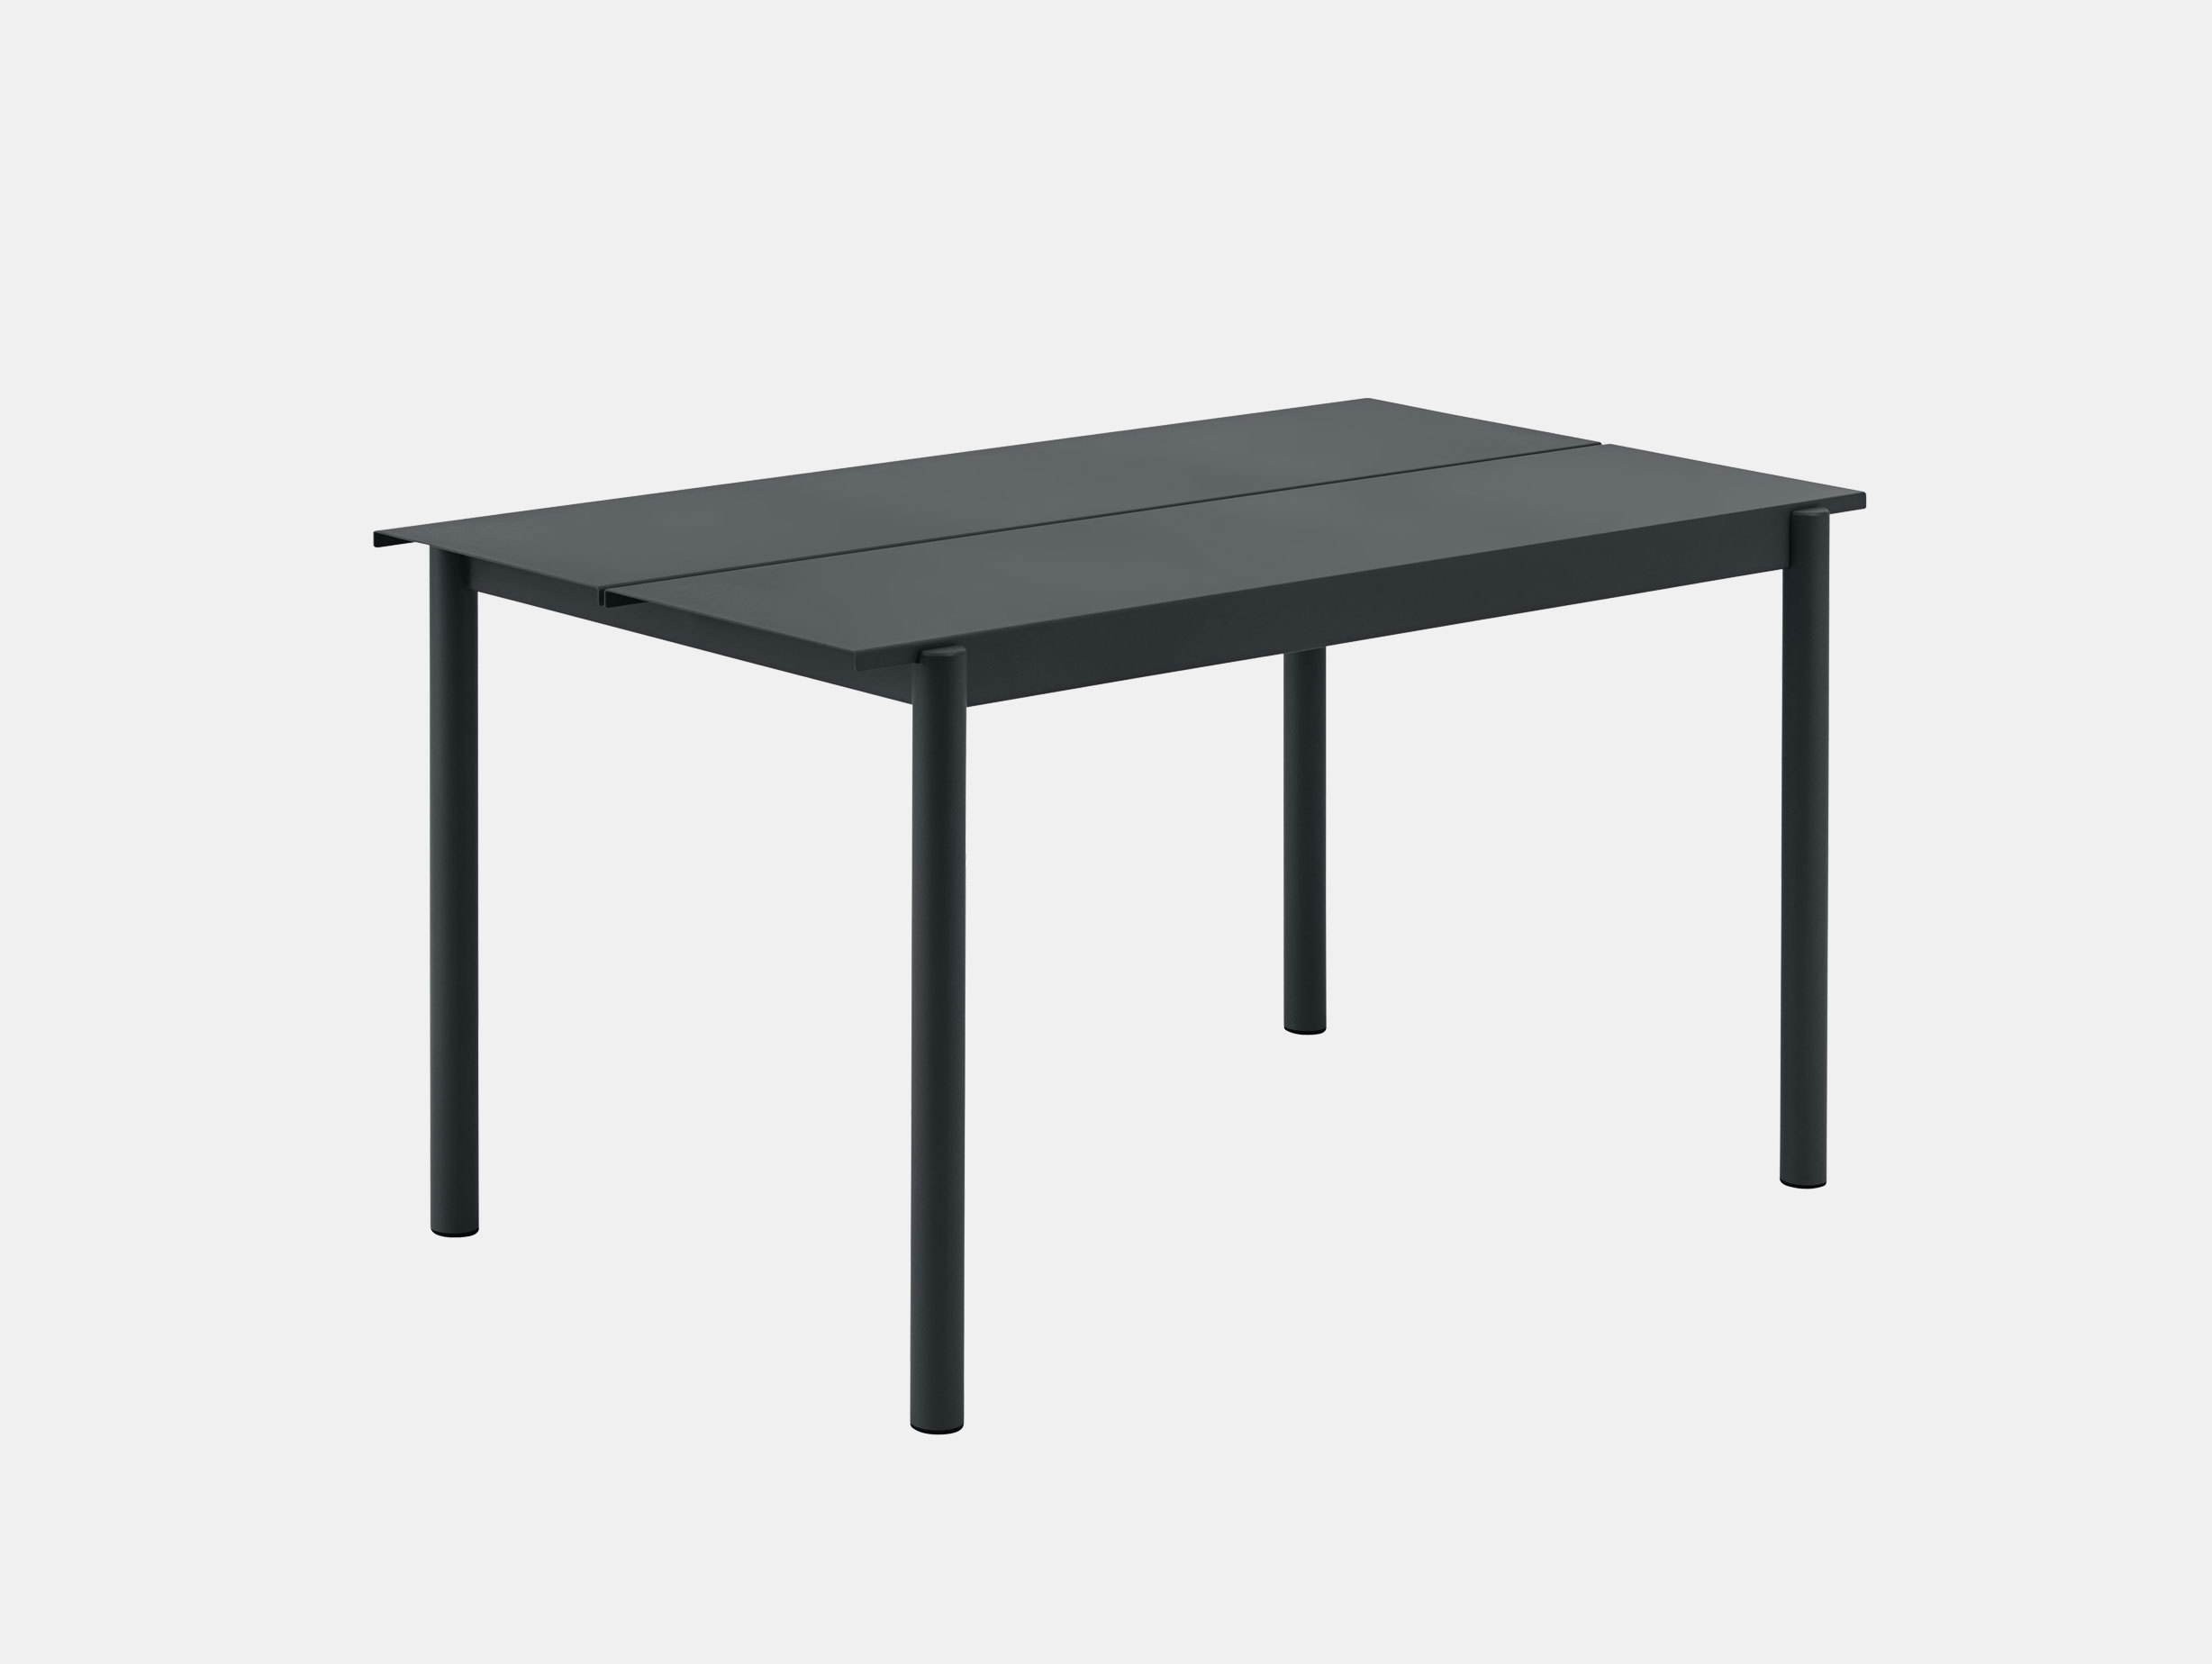 Muuto Linear Steel Outdoor Table L 140Cm Black Thomas Bentzen